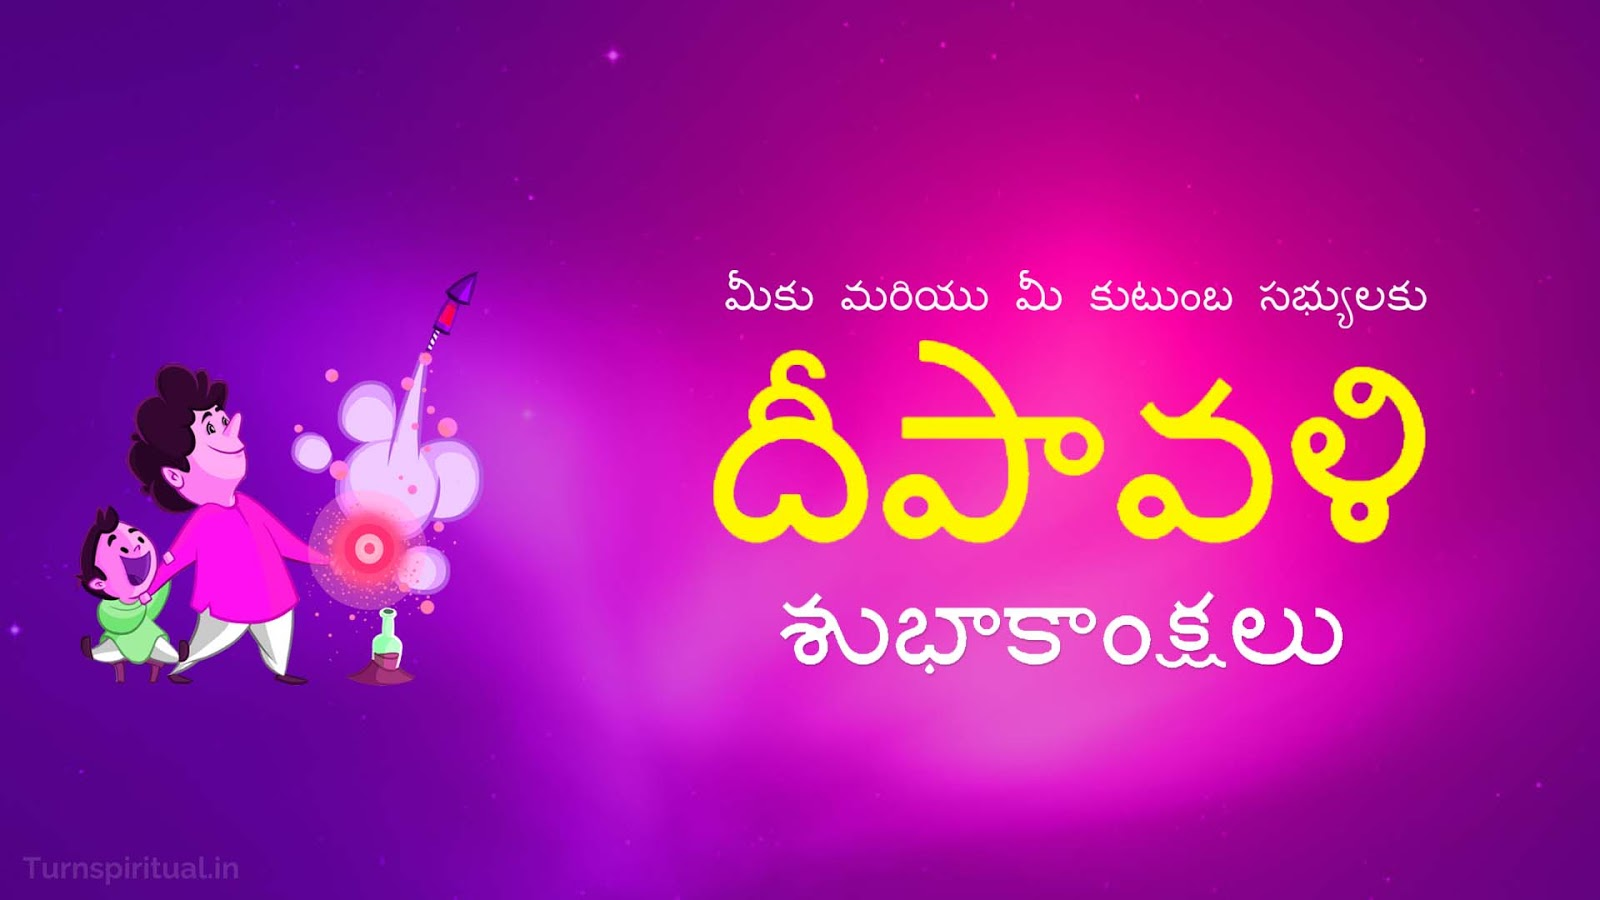 Happy deepavali ( diwali ) telugu wishes greeting cards, Images, Pictures - Free wallpapers download